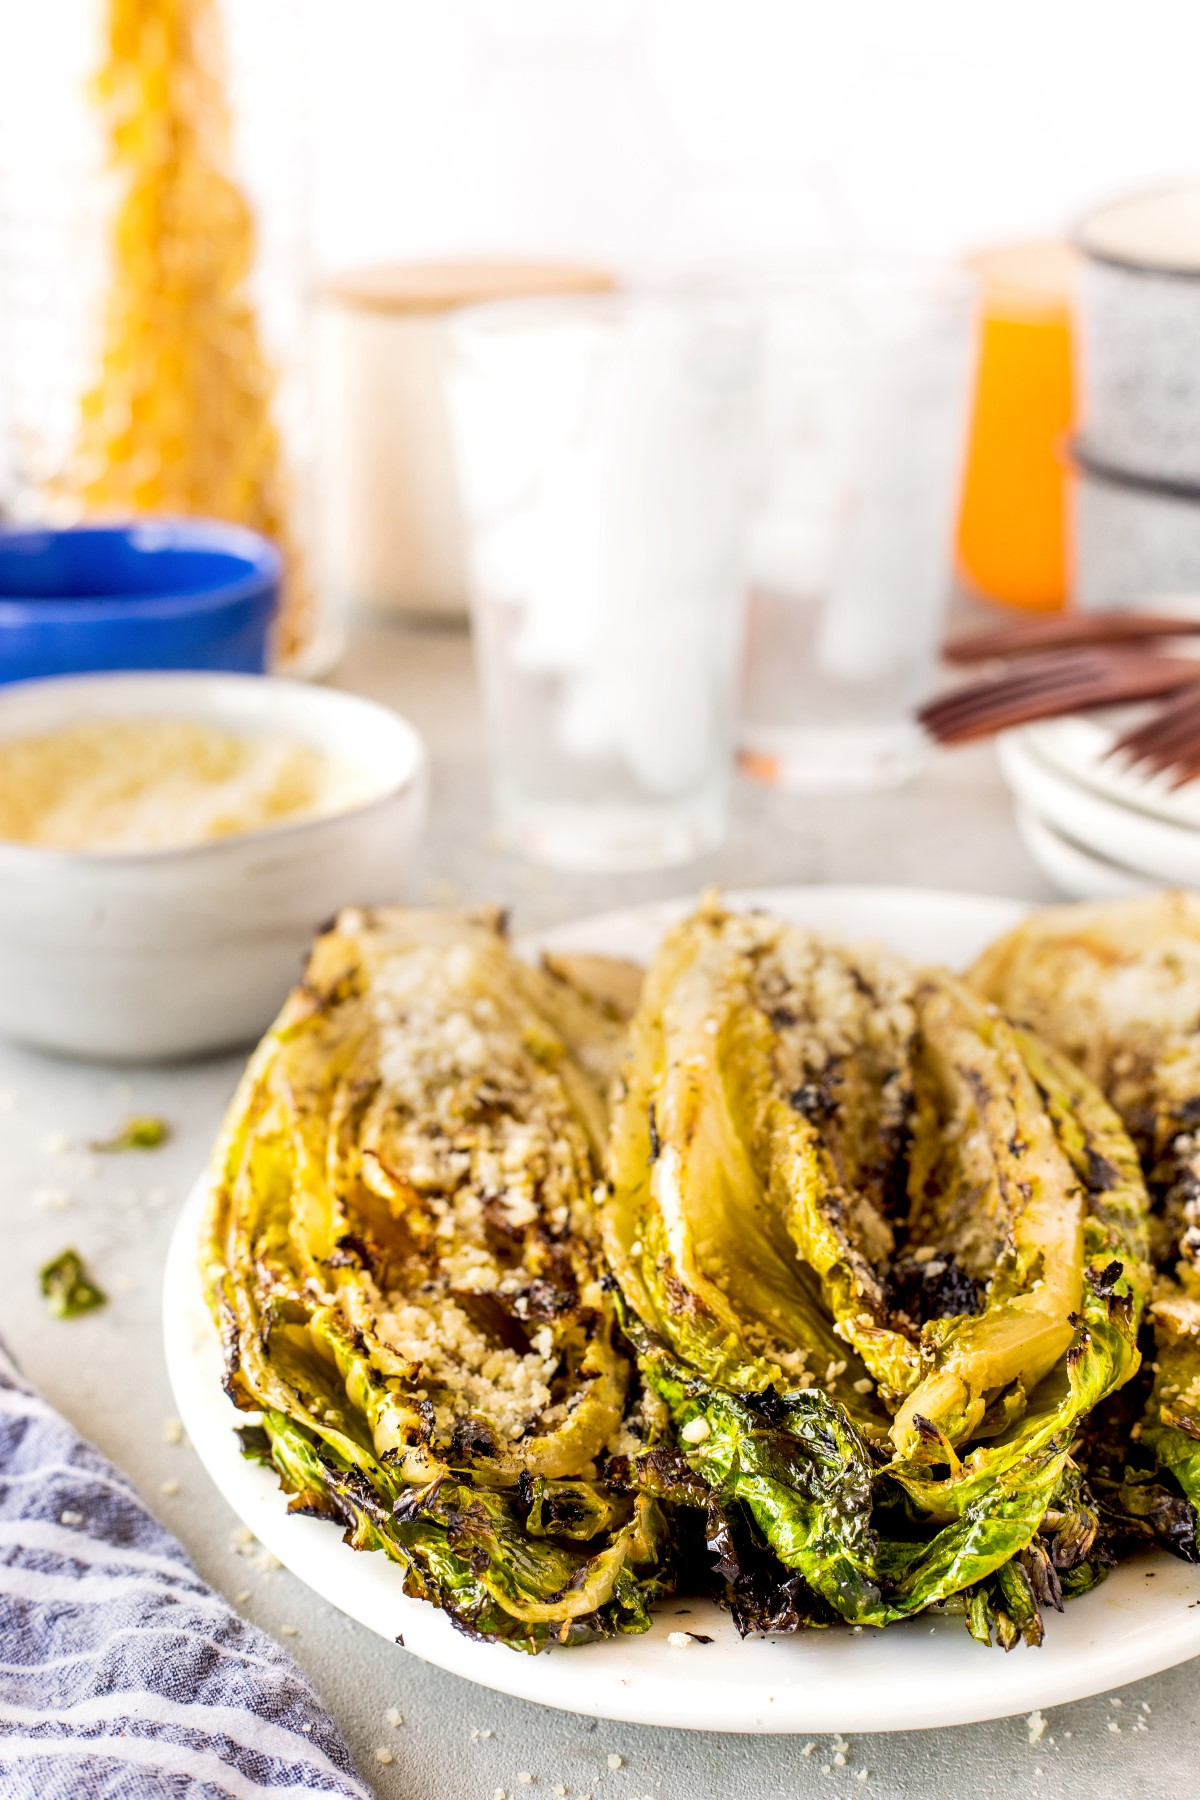 Grilled romaine lettuce halves on a white platter with grated asiago cheese sprinkled on top.